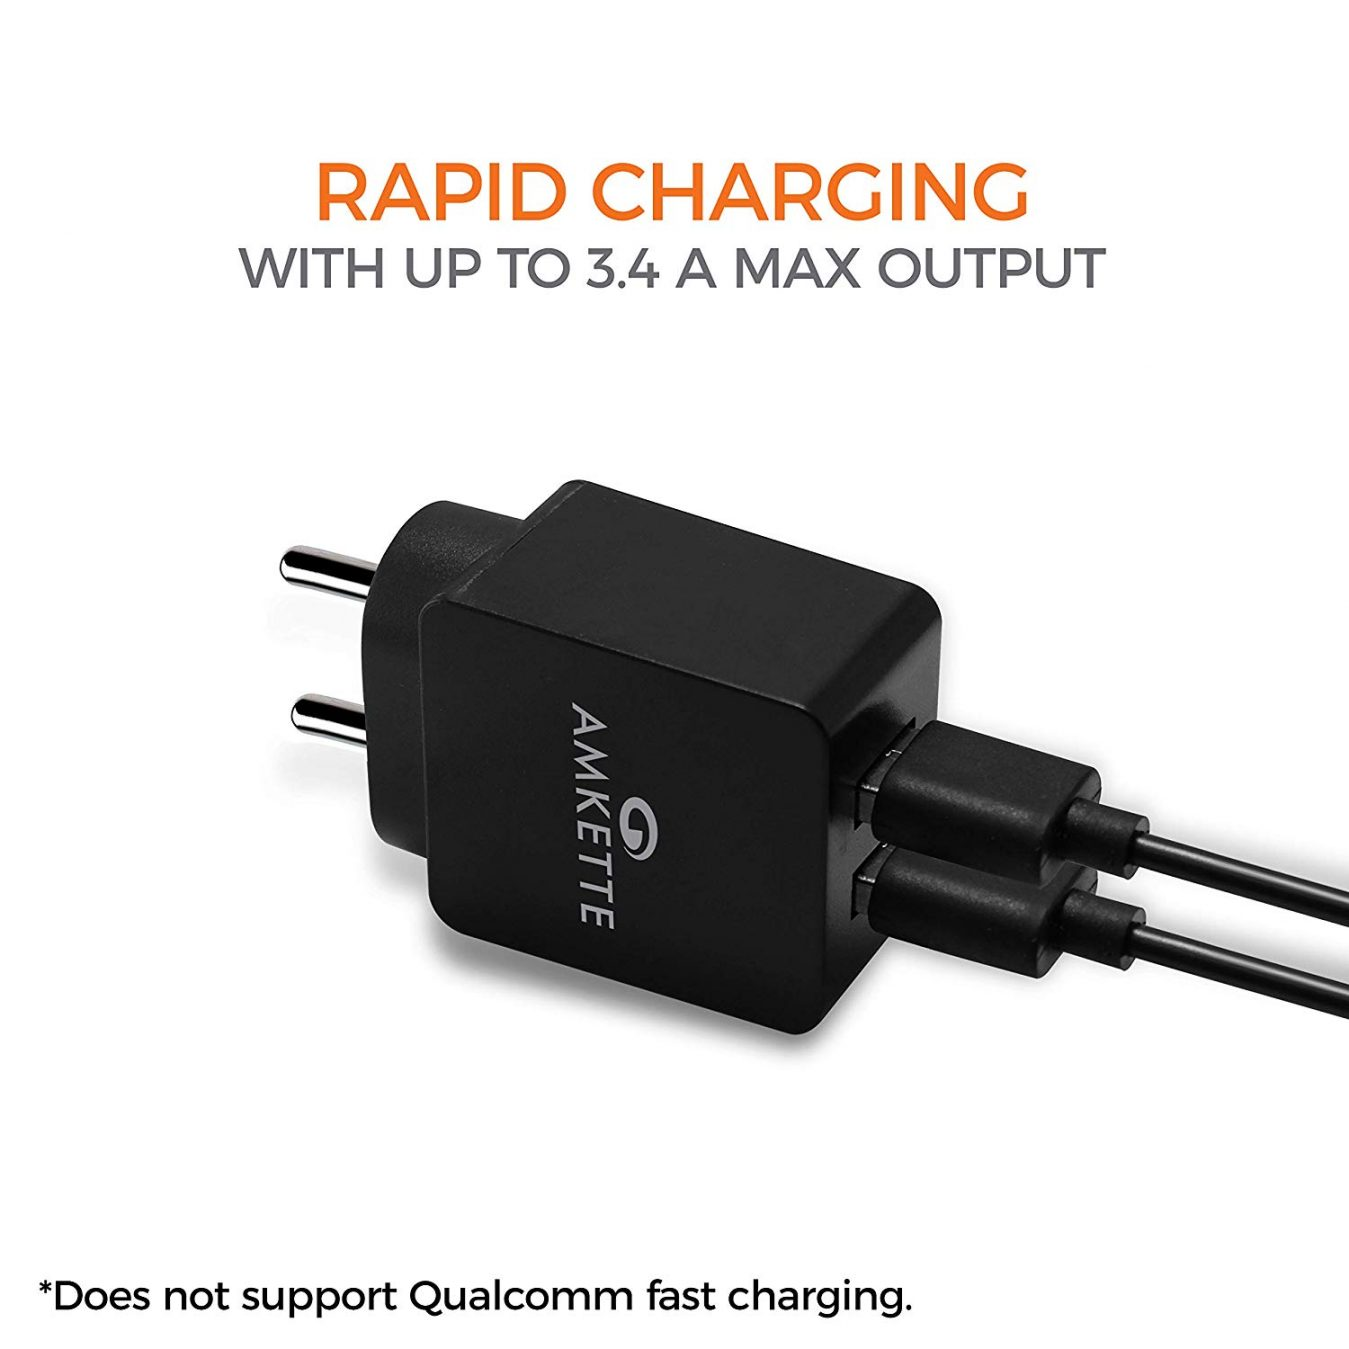 Rapid 2 Port 3.4A USB Wall Charge